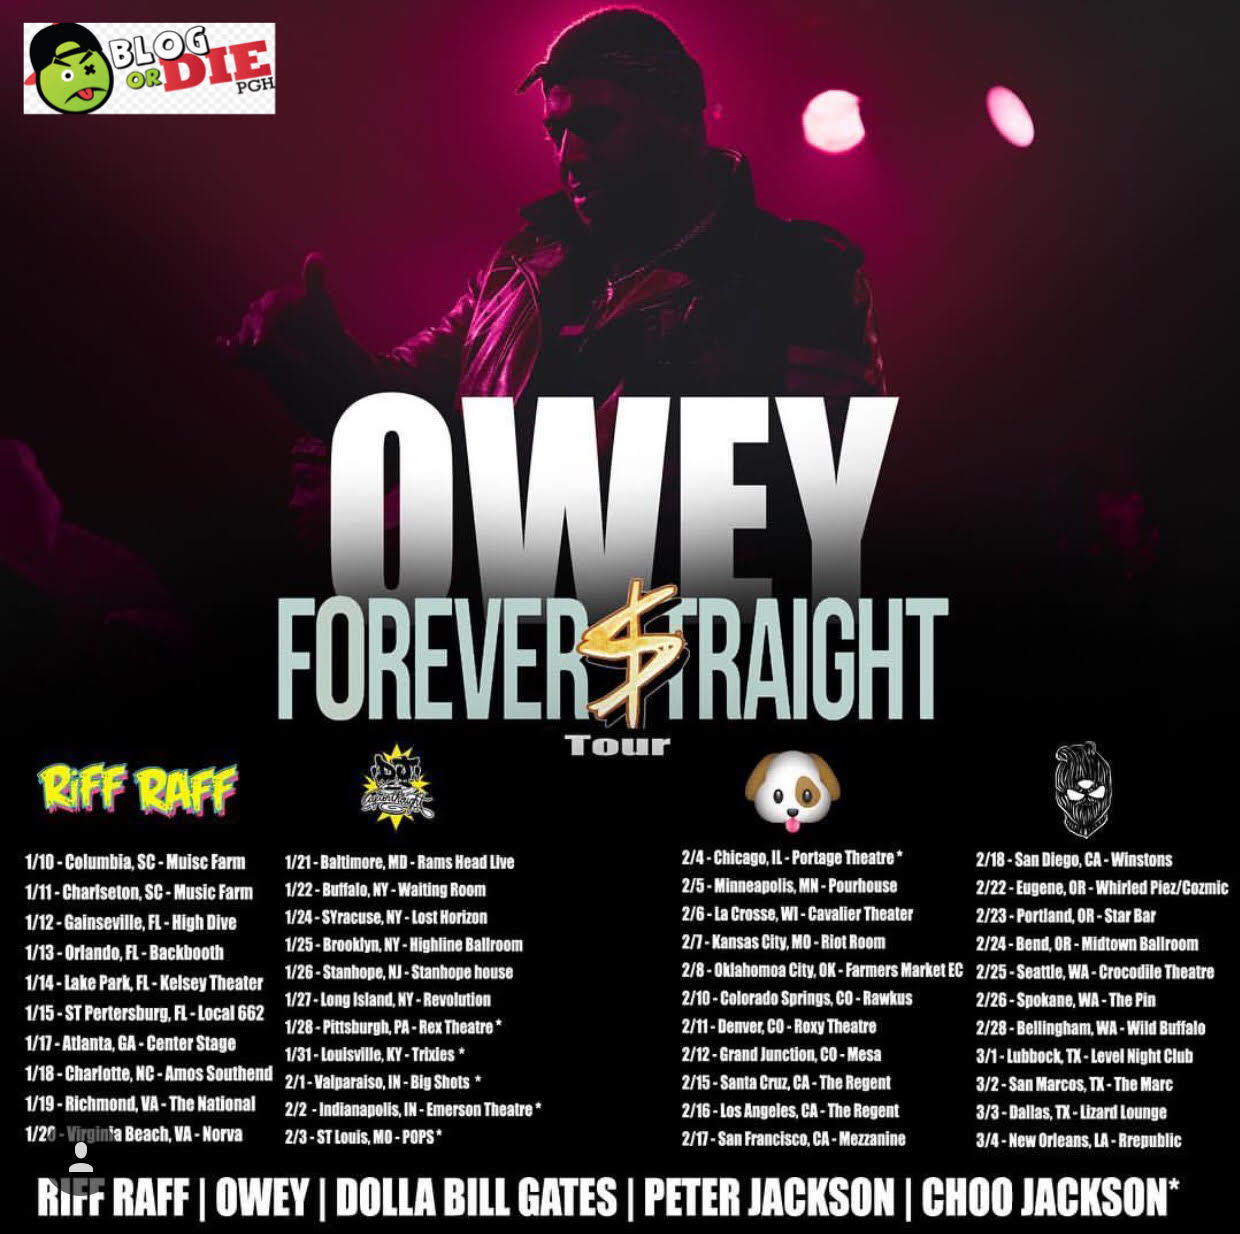 Owey, Forever Straight Tour Prepares to Launch